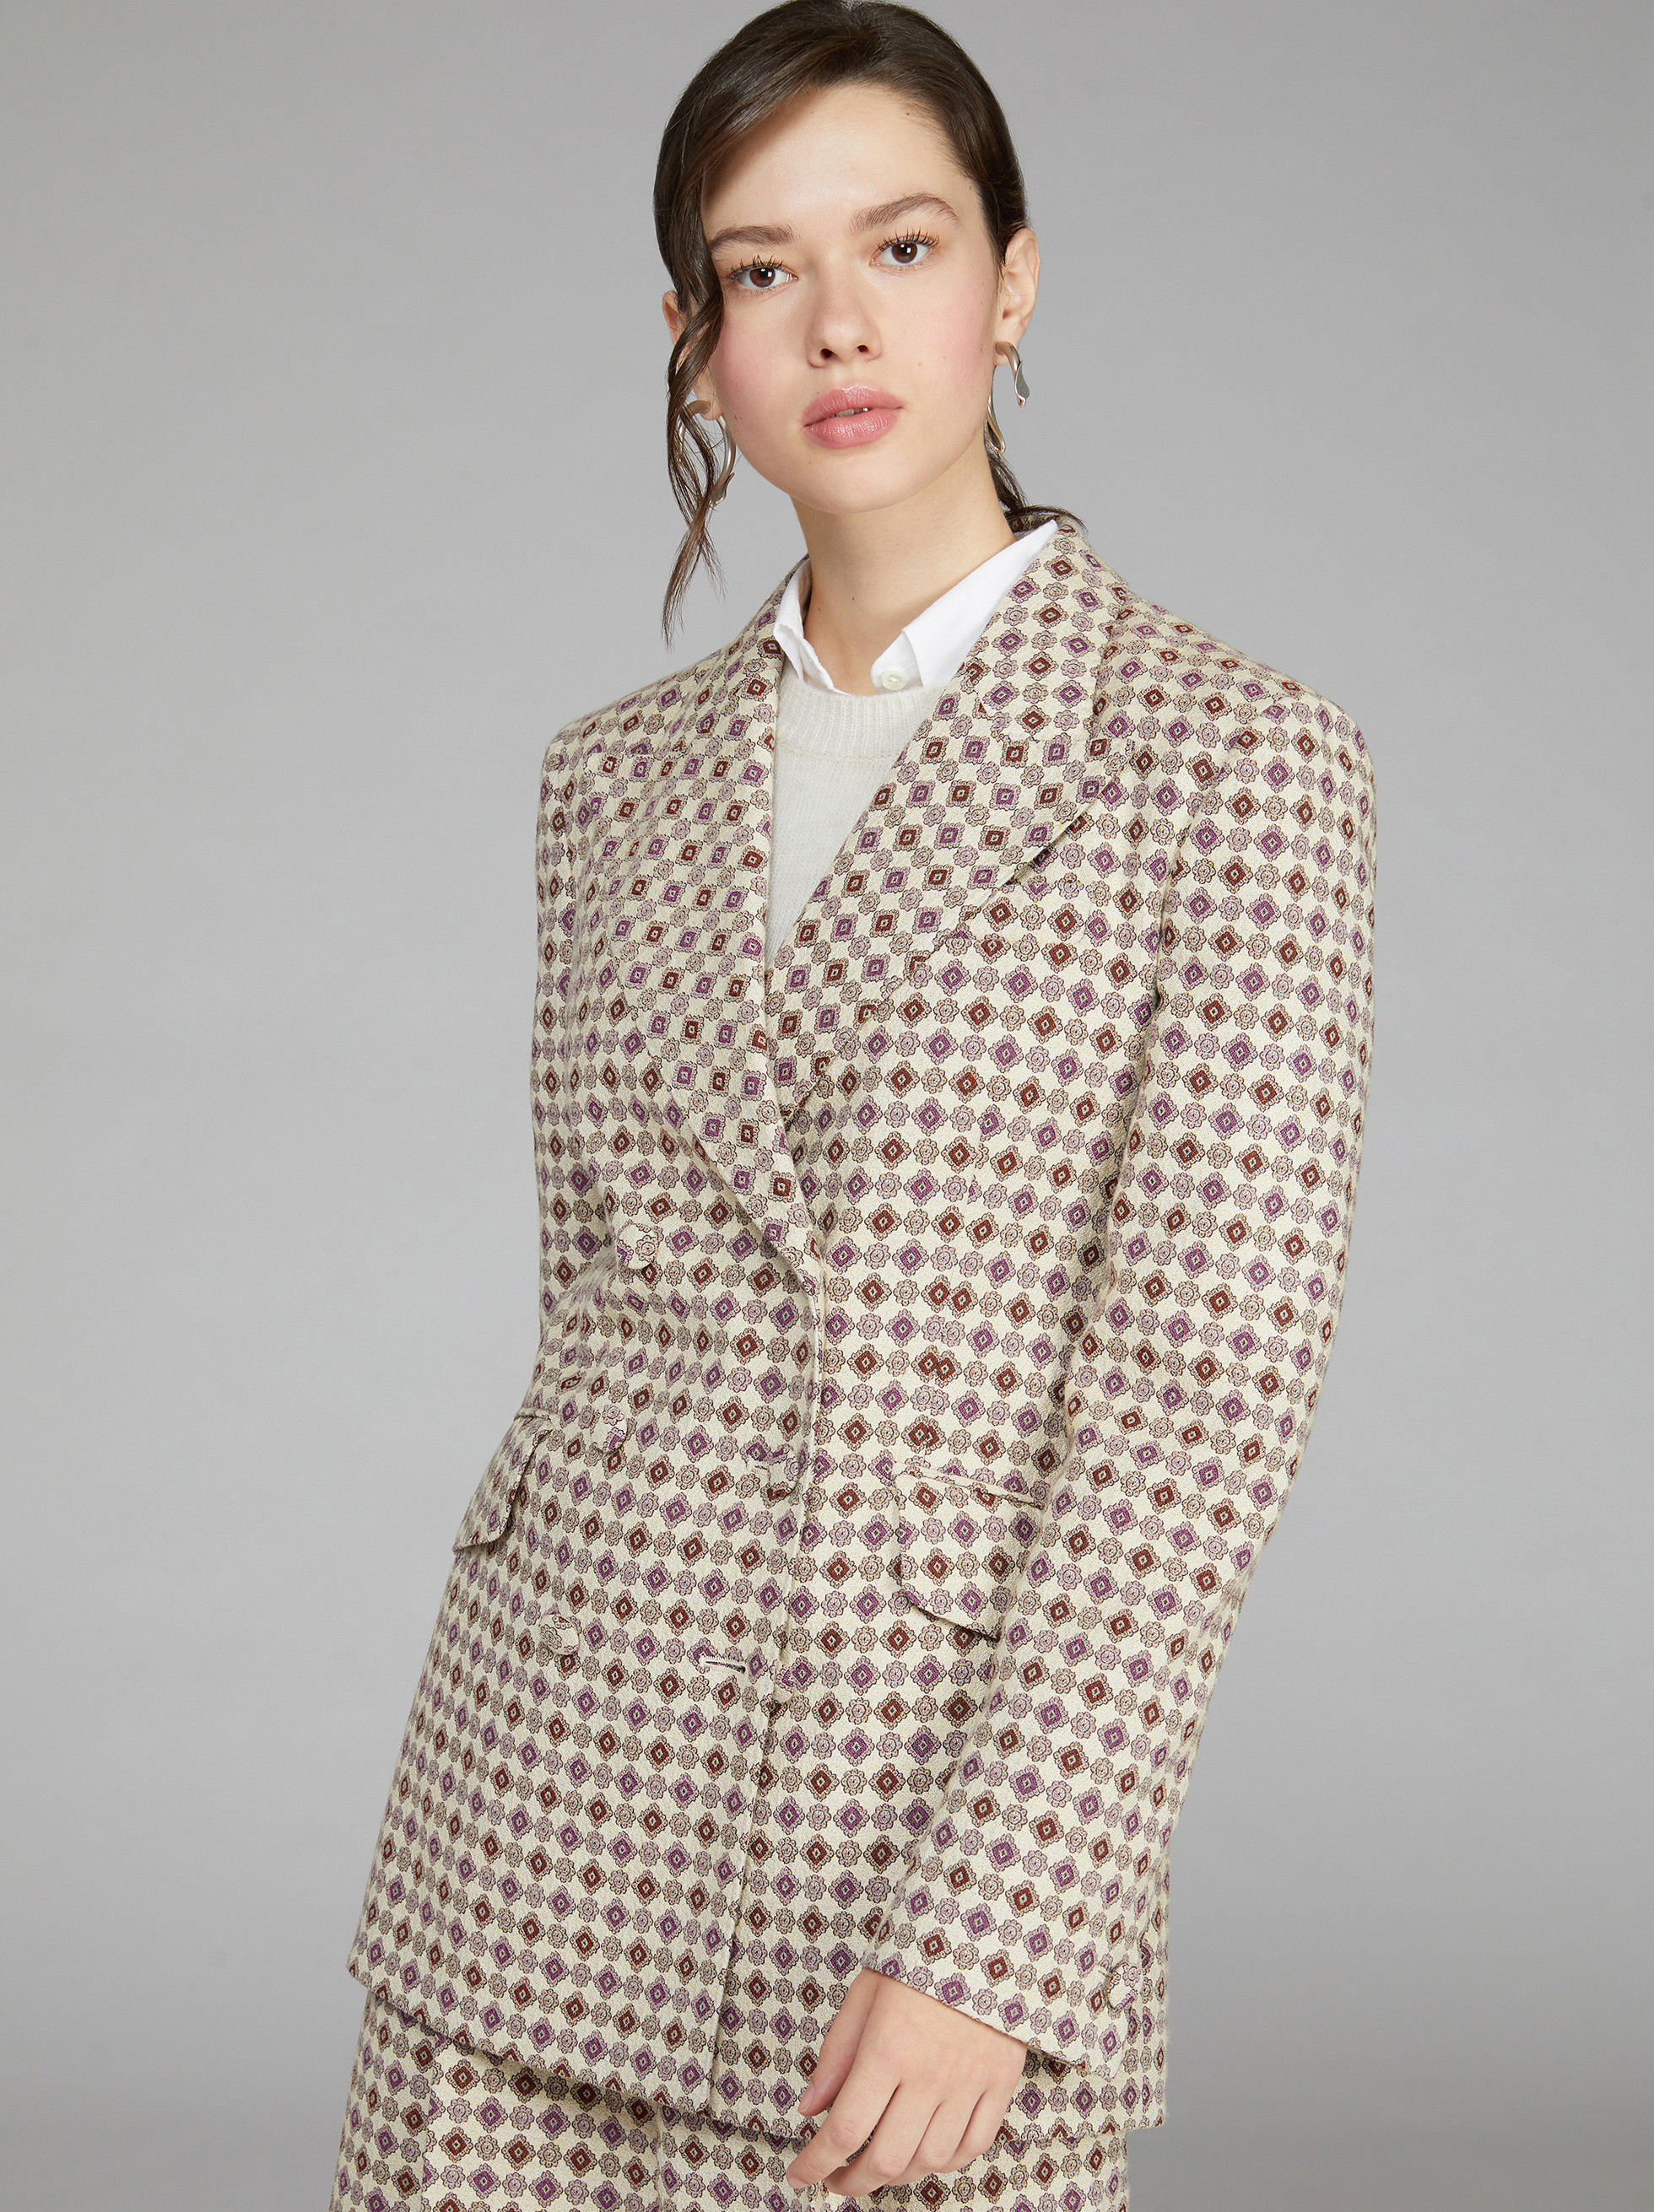 TIE FABRIC PRINT DOUBLE-BREASTED JACKET